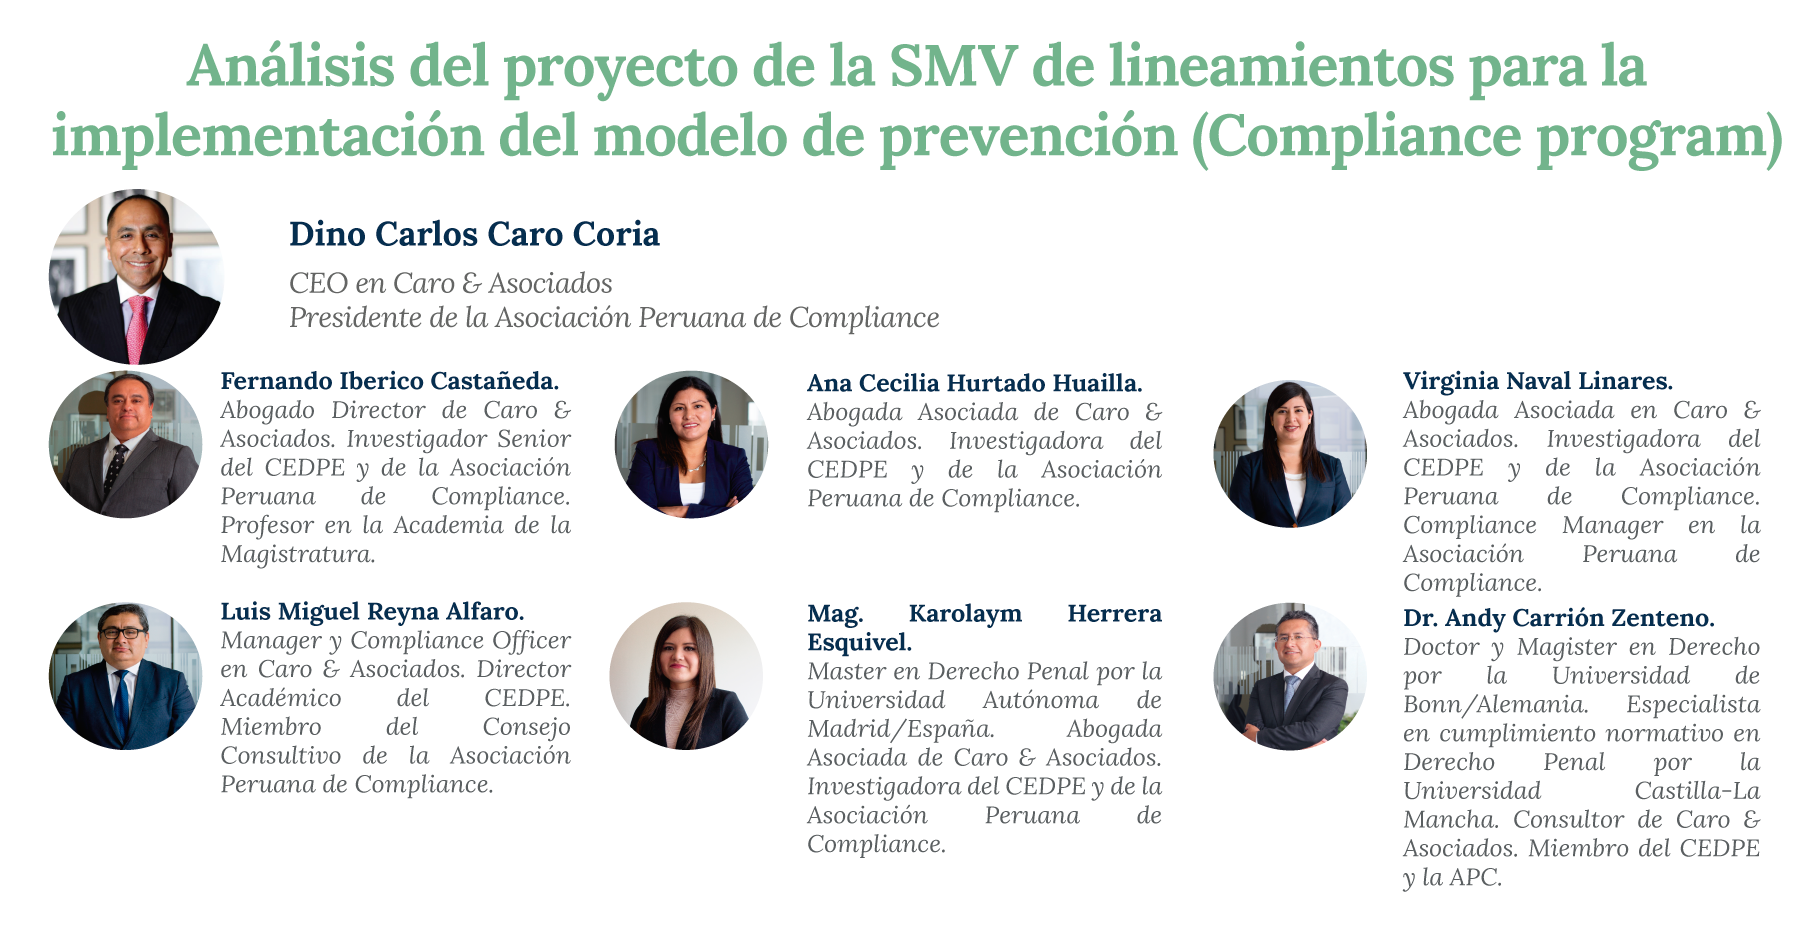 Analysis Of The Superintendence Of Securities Market (SMV)'s Project Of Guidelines For The Application Of The Prevention Model (Compliance Program)